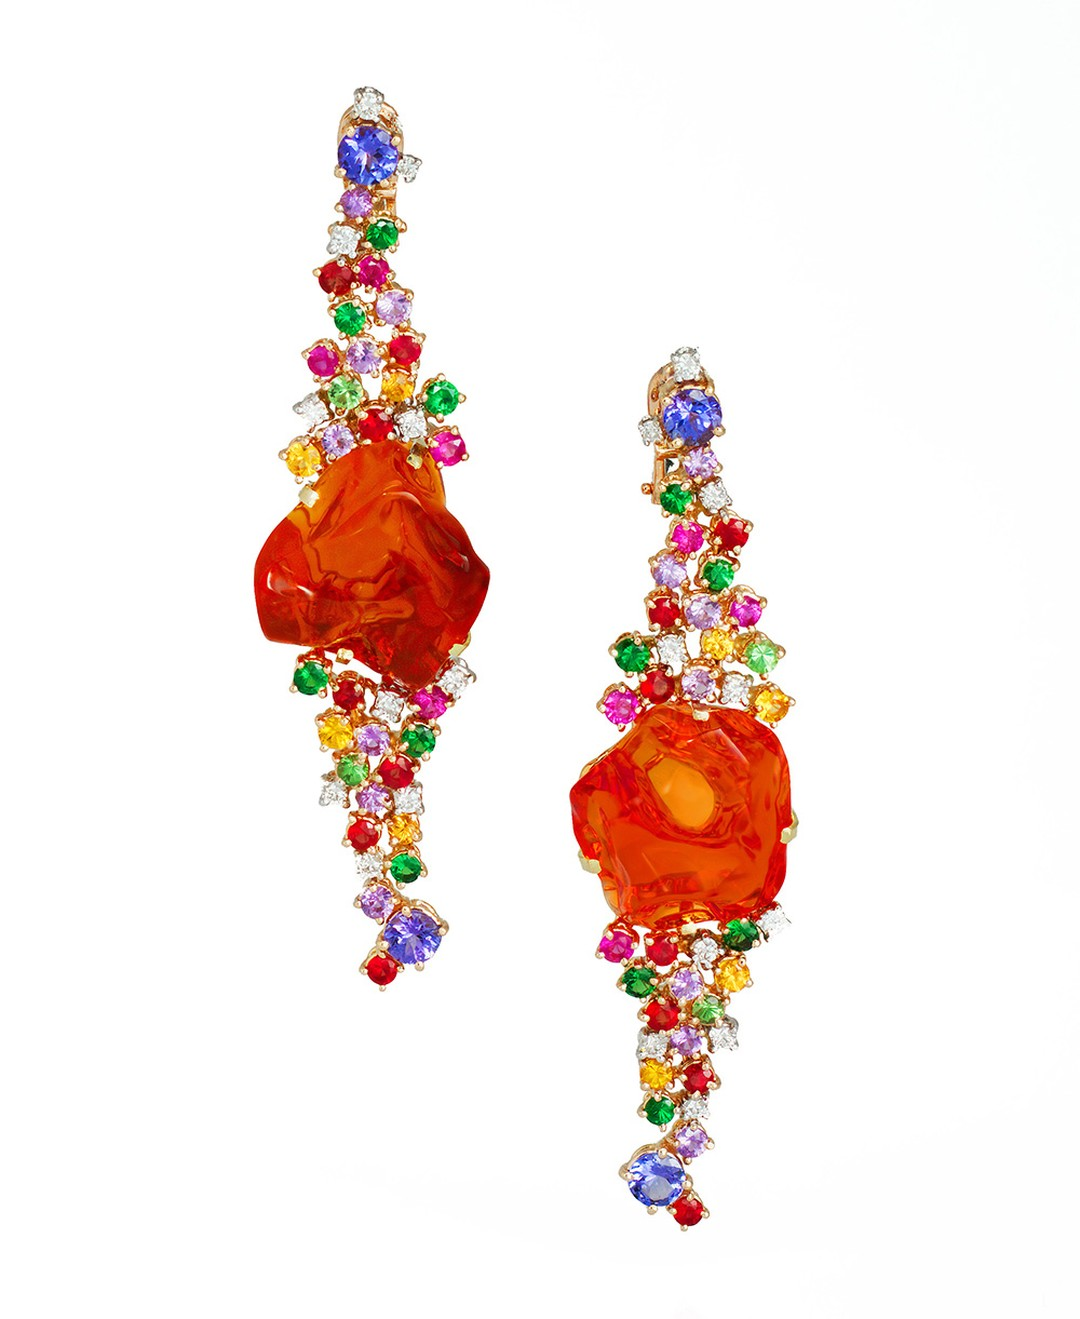 Mauro Felter Path of Flowers yellow and white gold earrings featuring fire opals, rubies, tanzanite, tsavorite, multi-colour sapphires and diamonds.